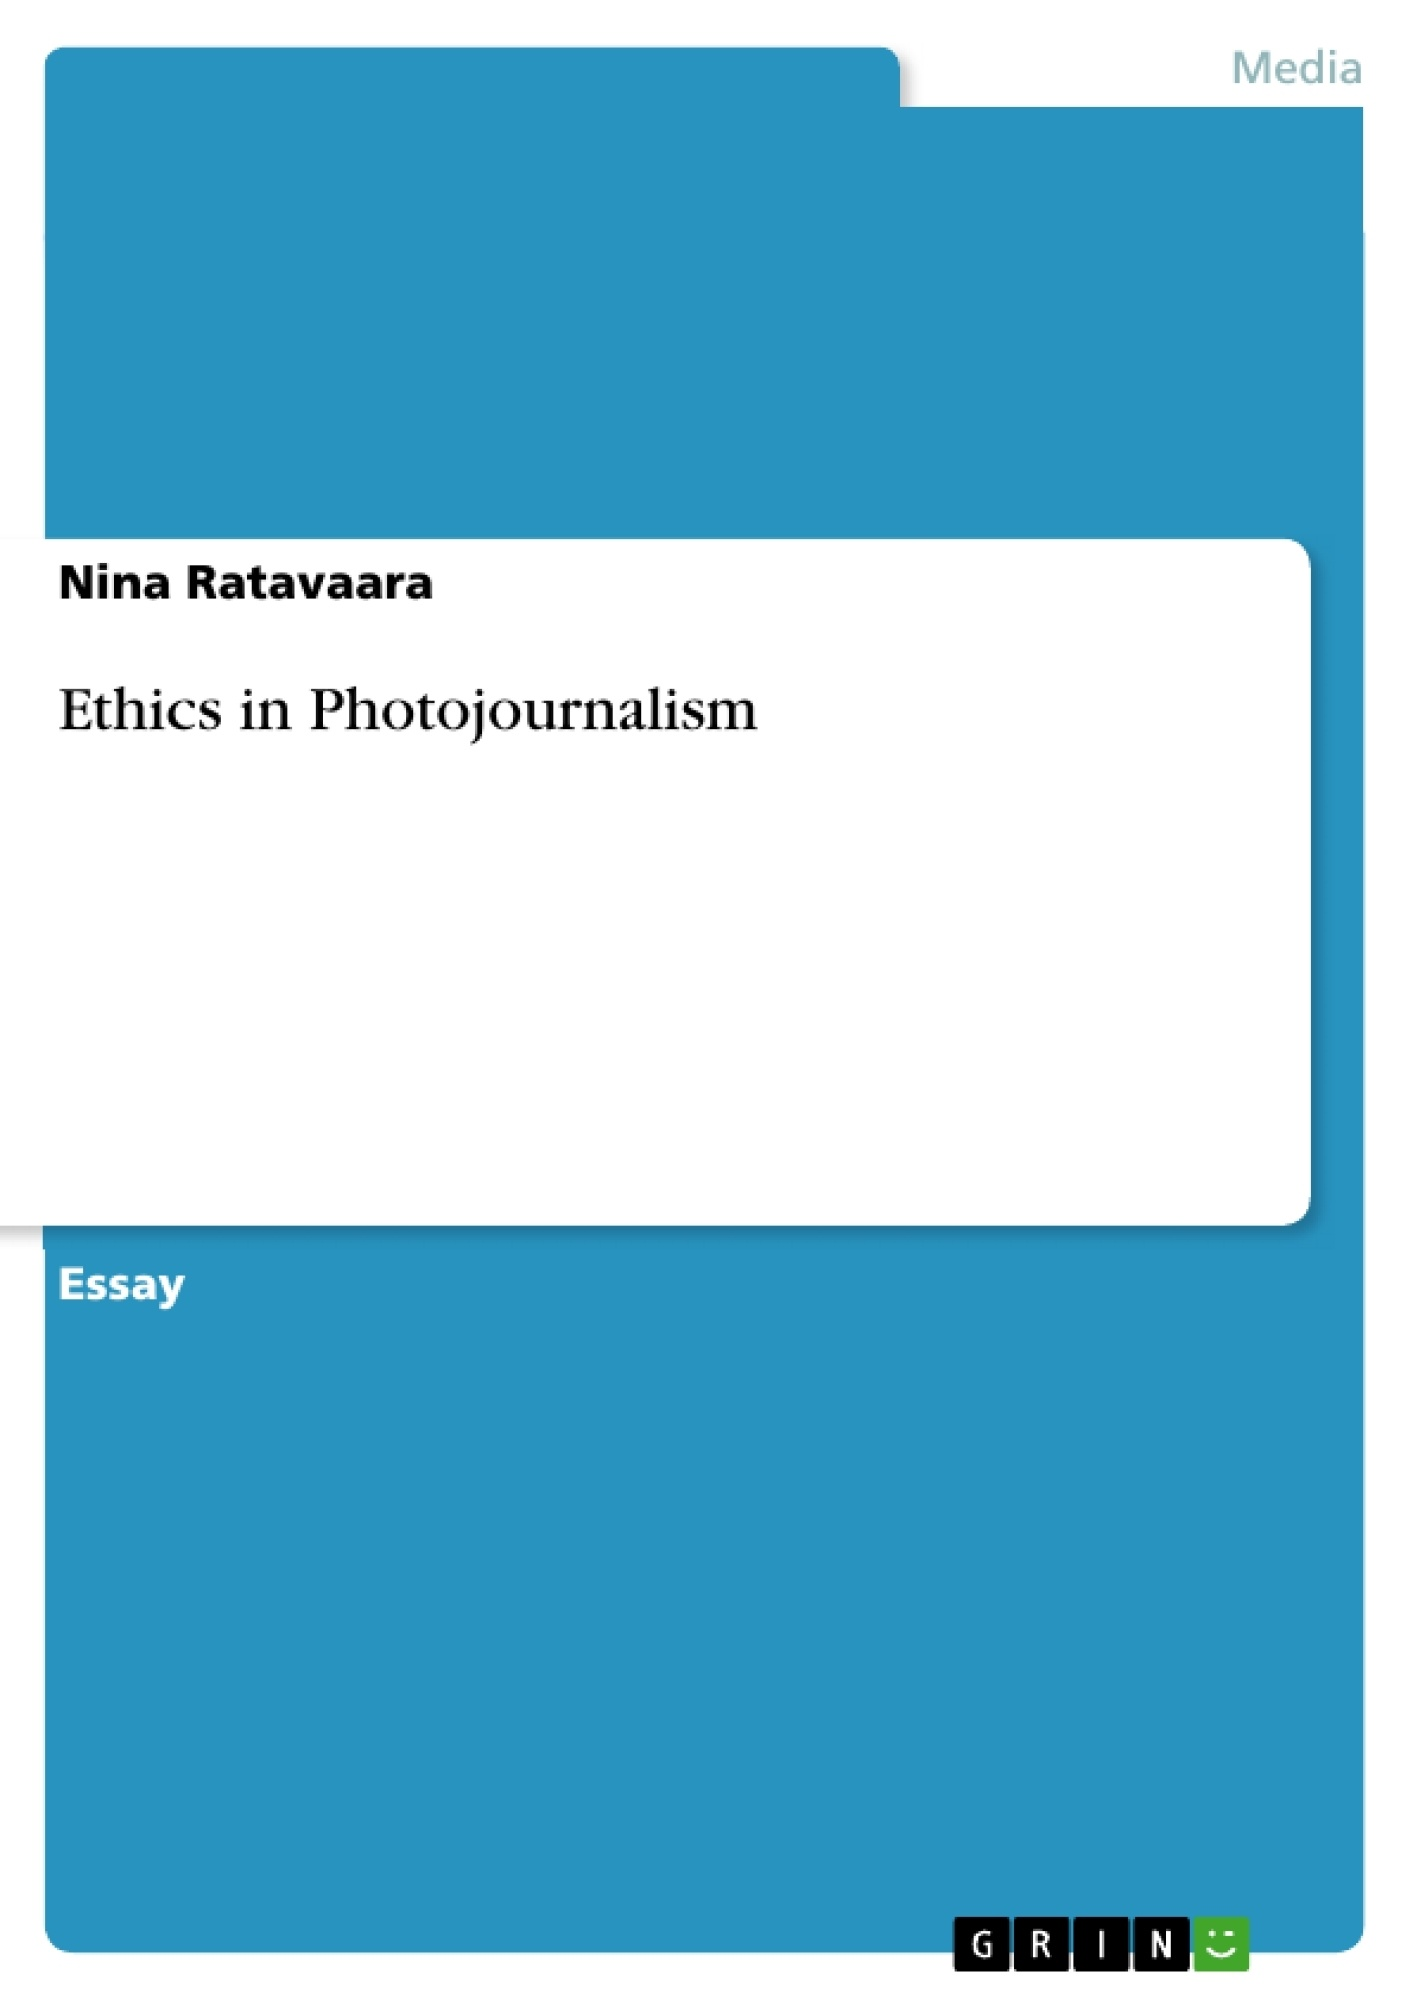 Title: Ethics in Photojournalism